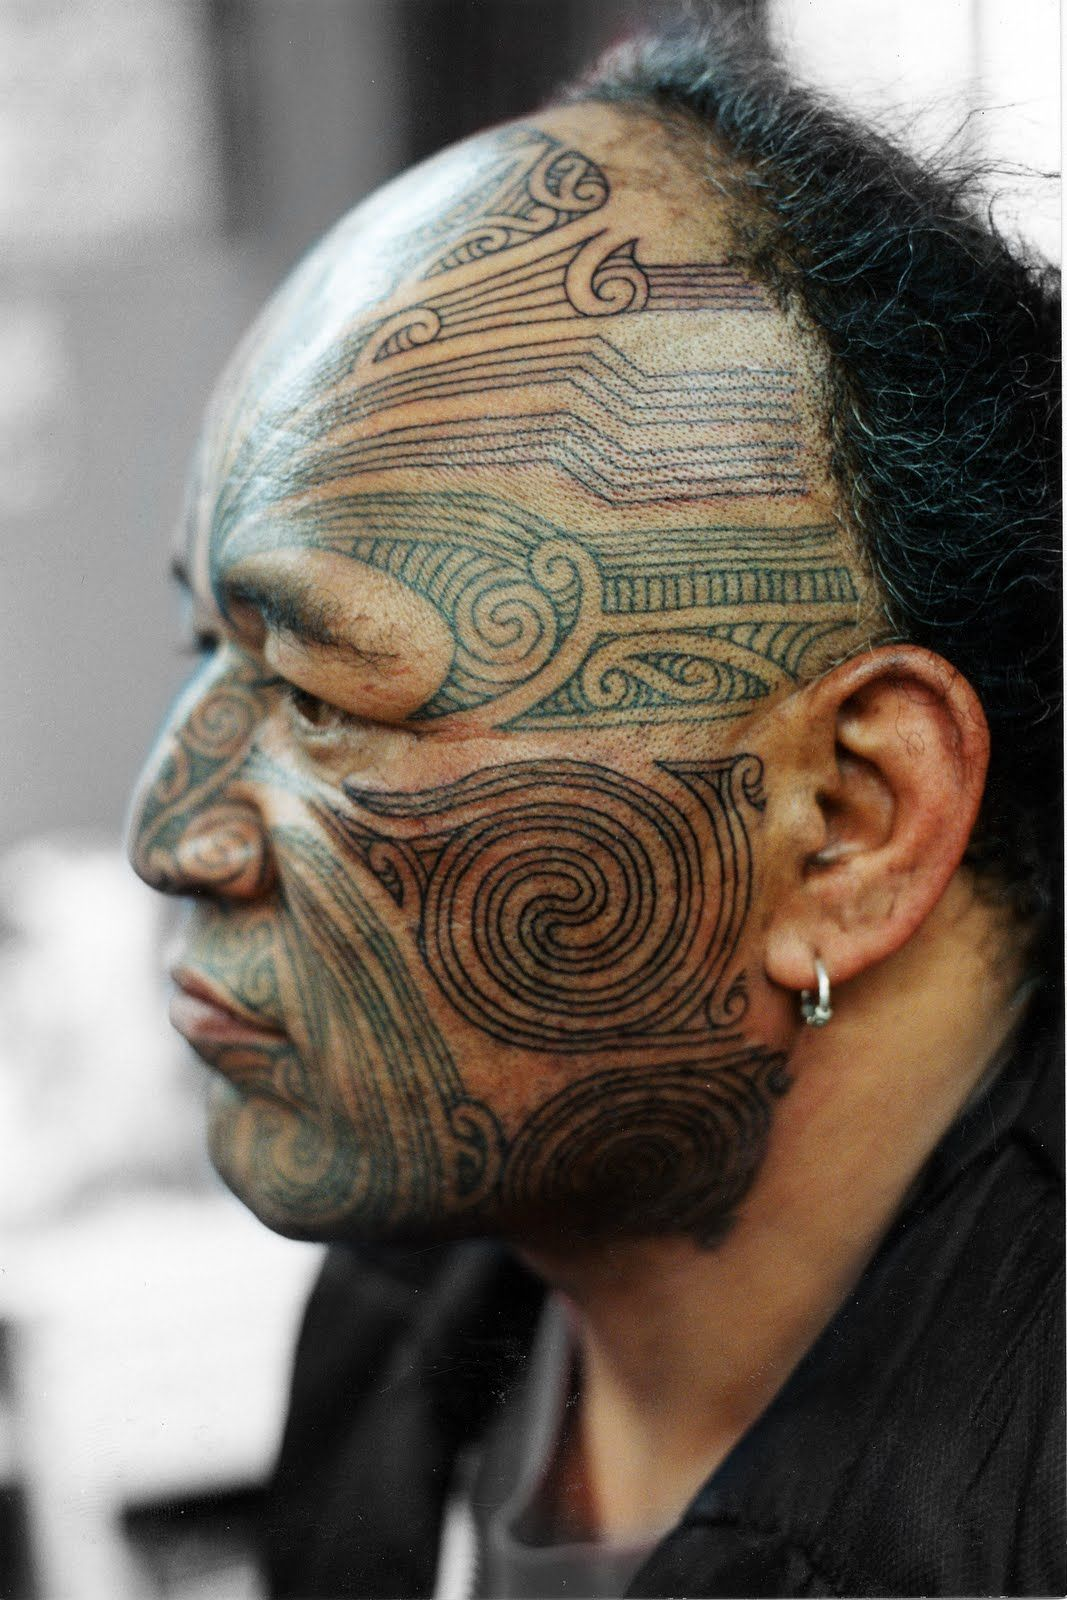 Maori Face Tattoo Female: Email This BlogThis! Share To Twitter Share